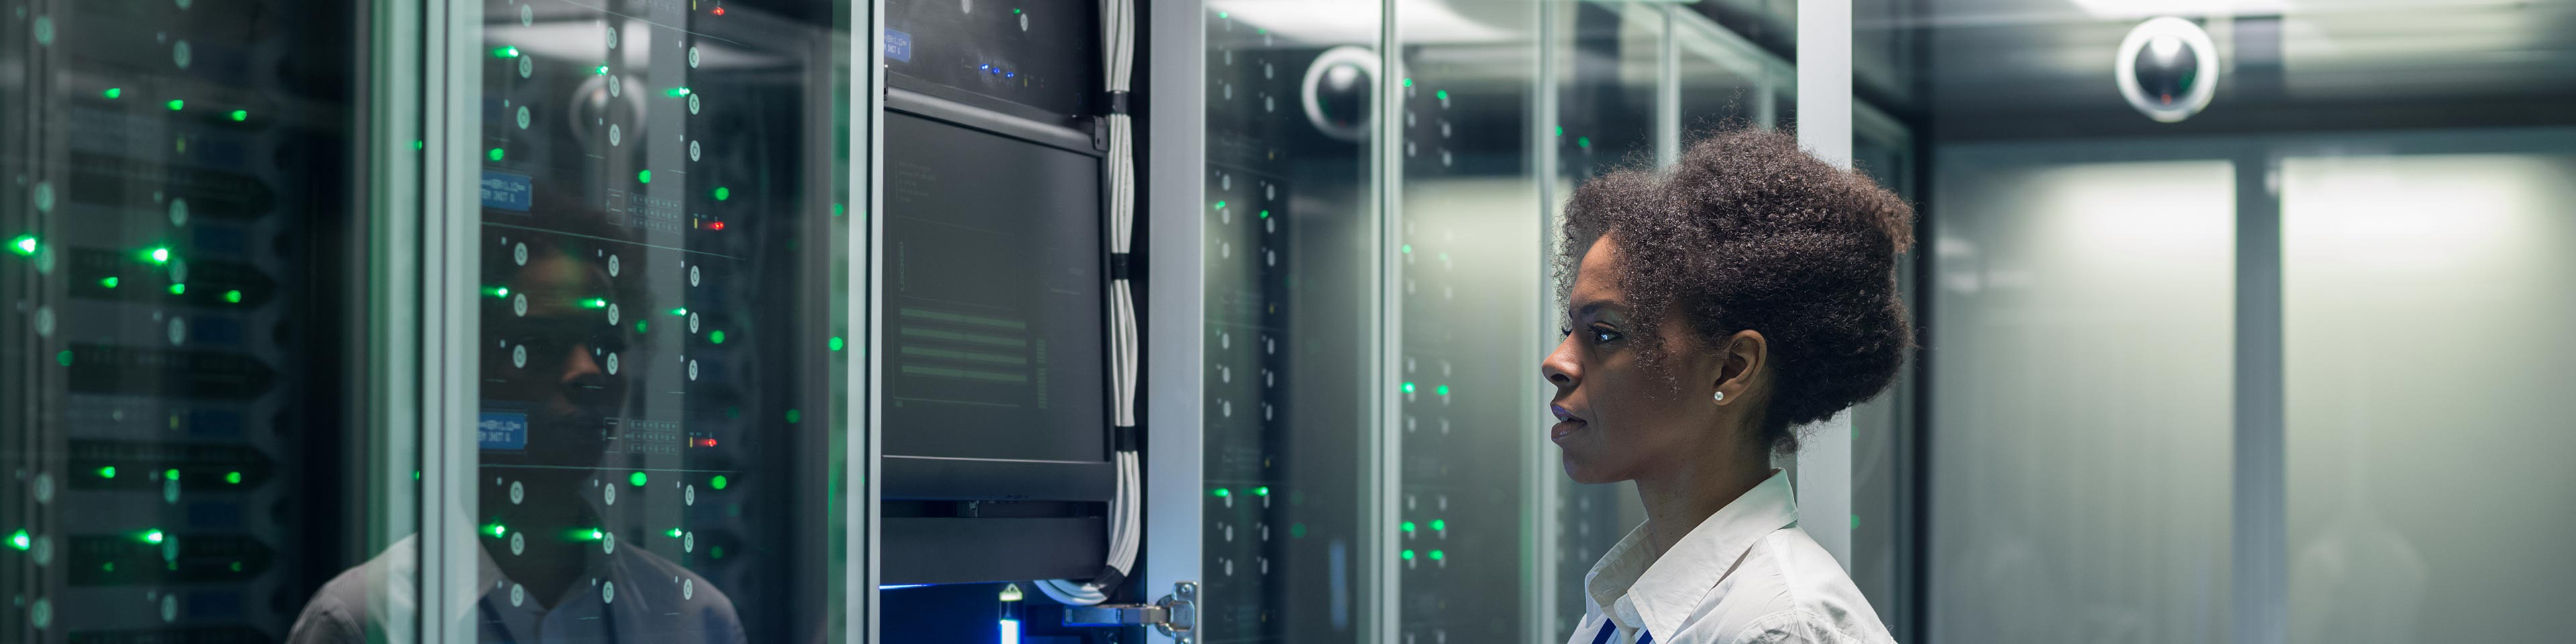 a female employee in a data center holding a tablet and inspecting servers